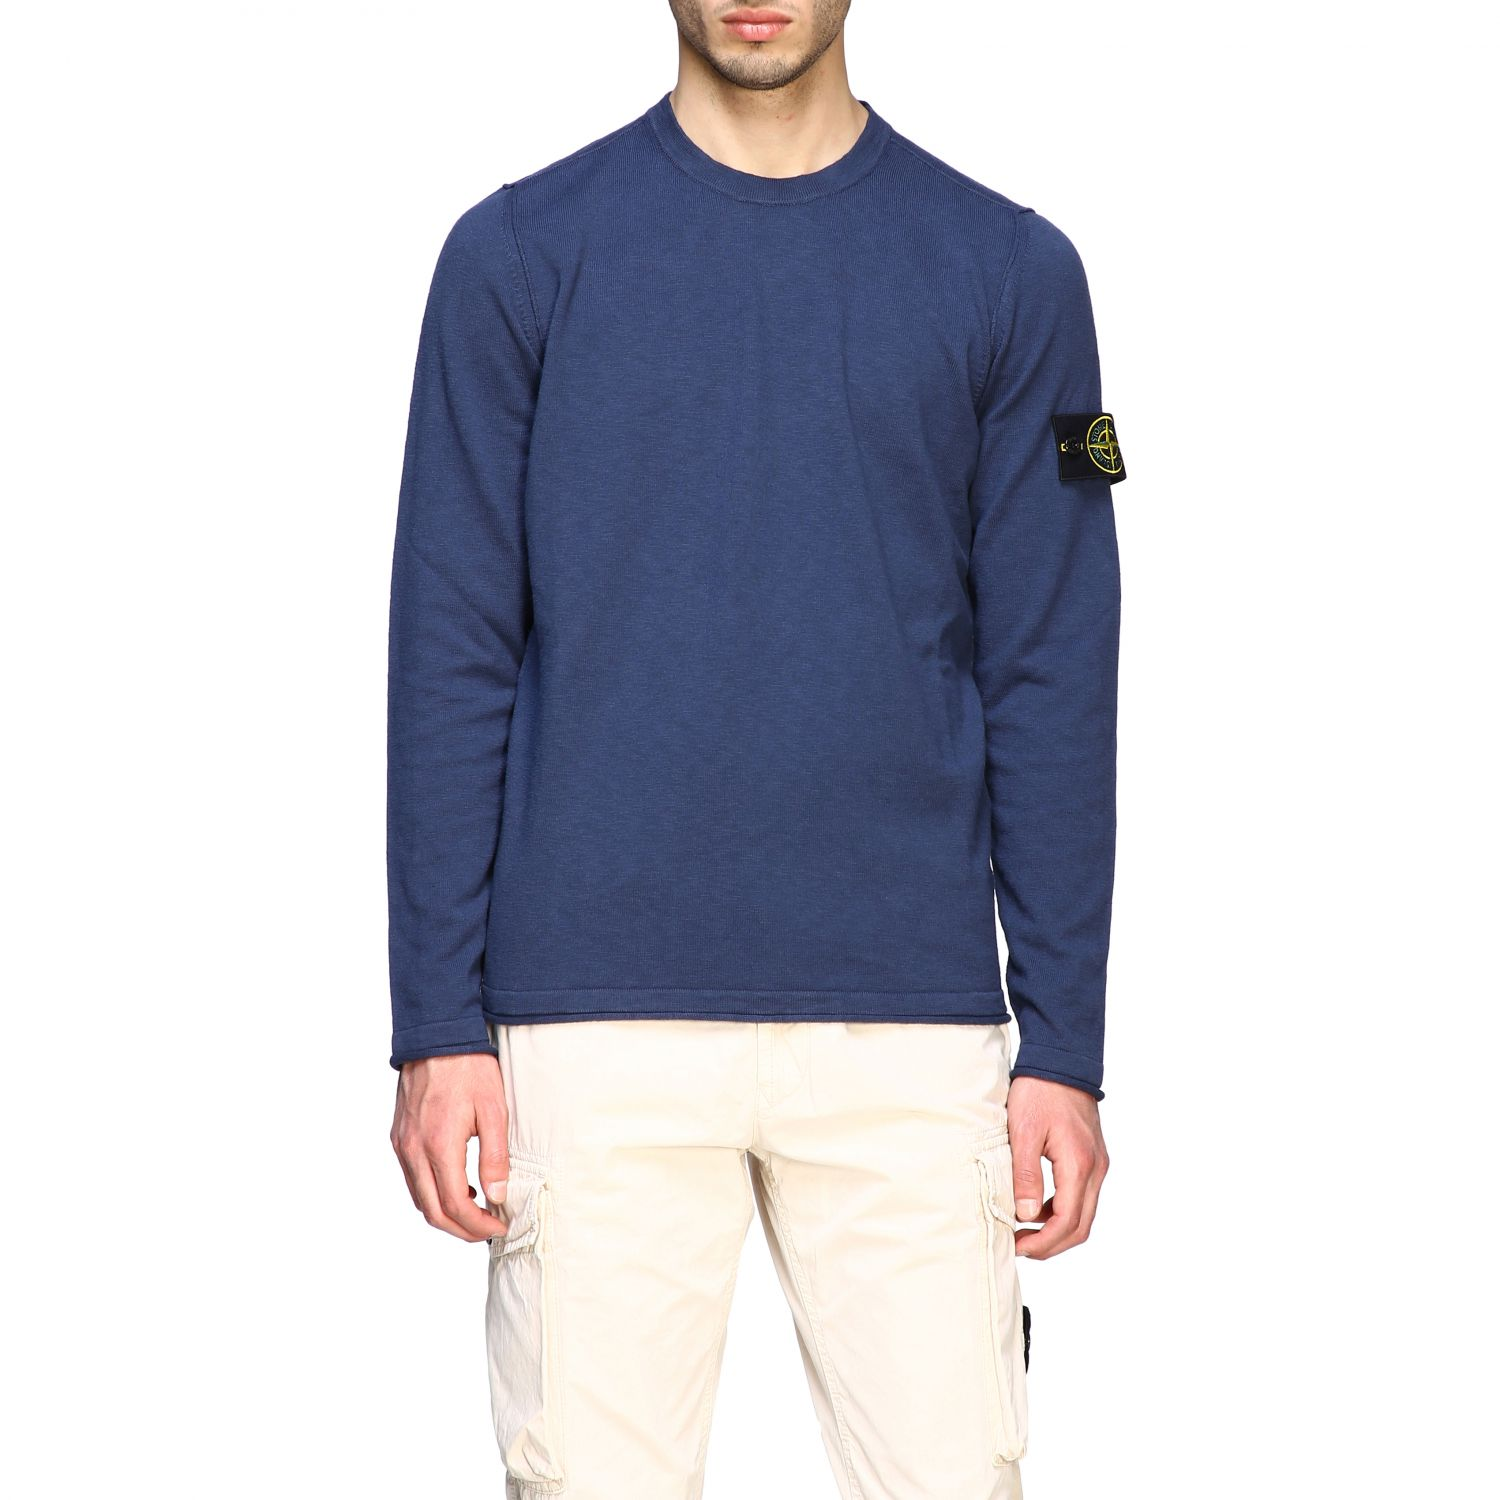 Stone Island crewneck sweater with logo blue 1